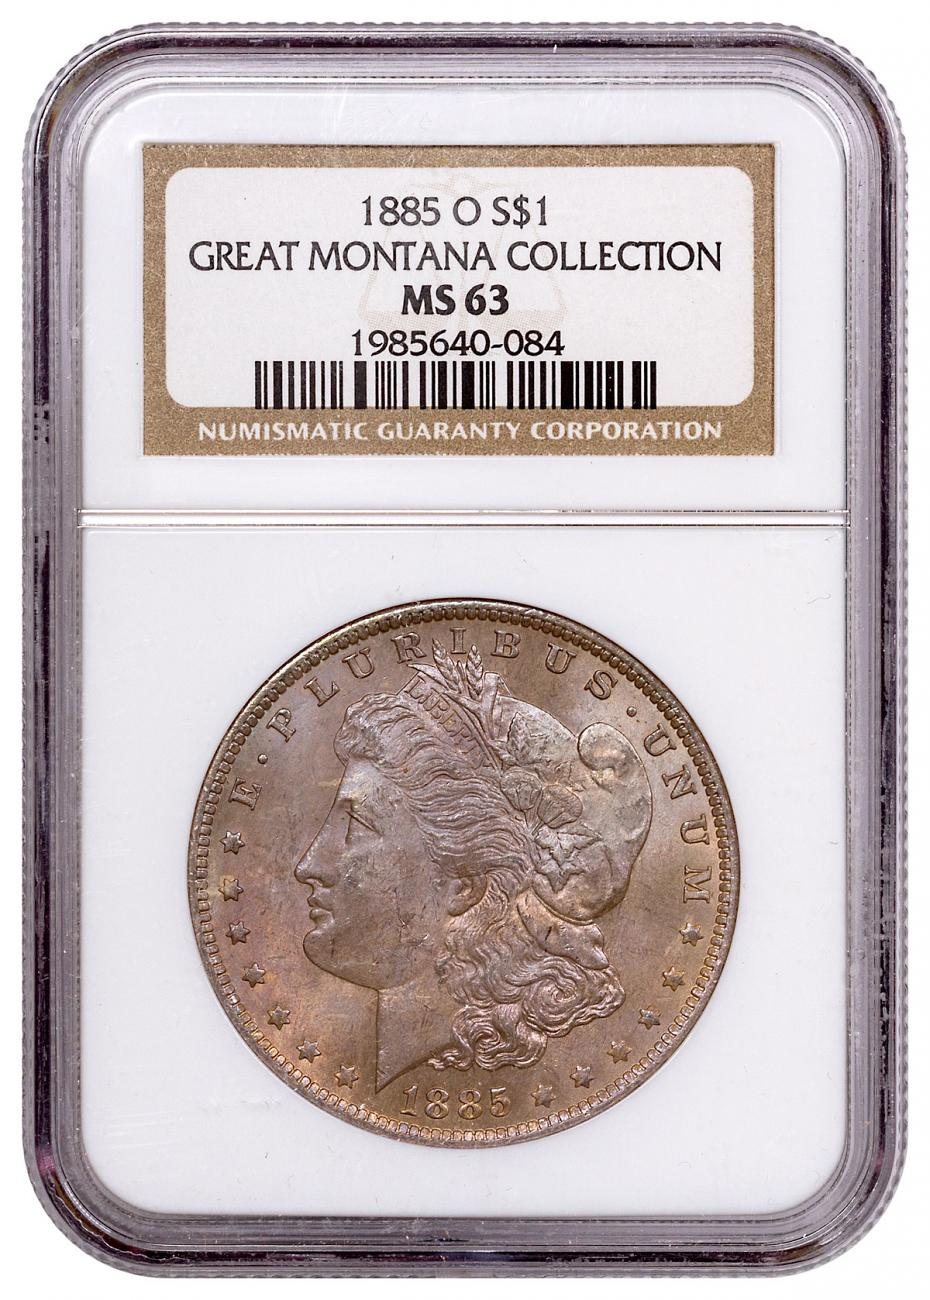 1885-O Morgan Silver Dollar From the Great Montana Collection NGC MS63 Toned CPCR 0084